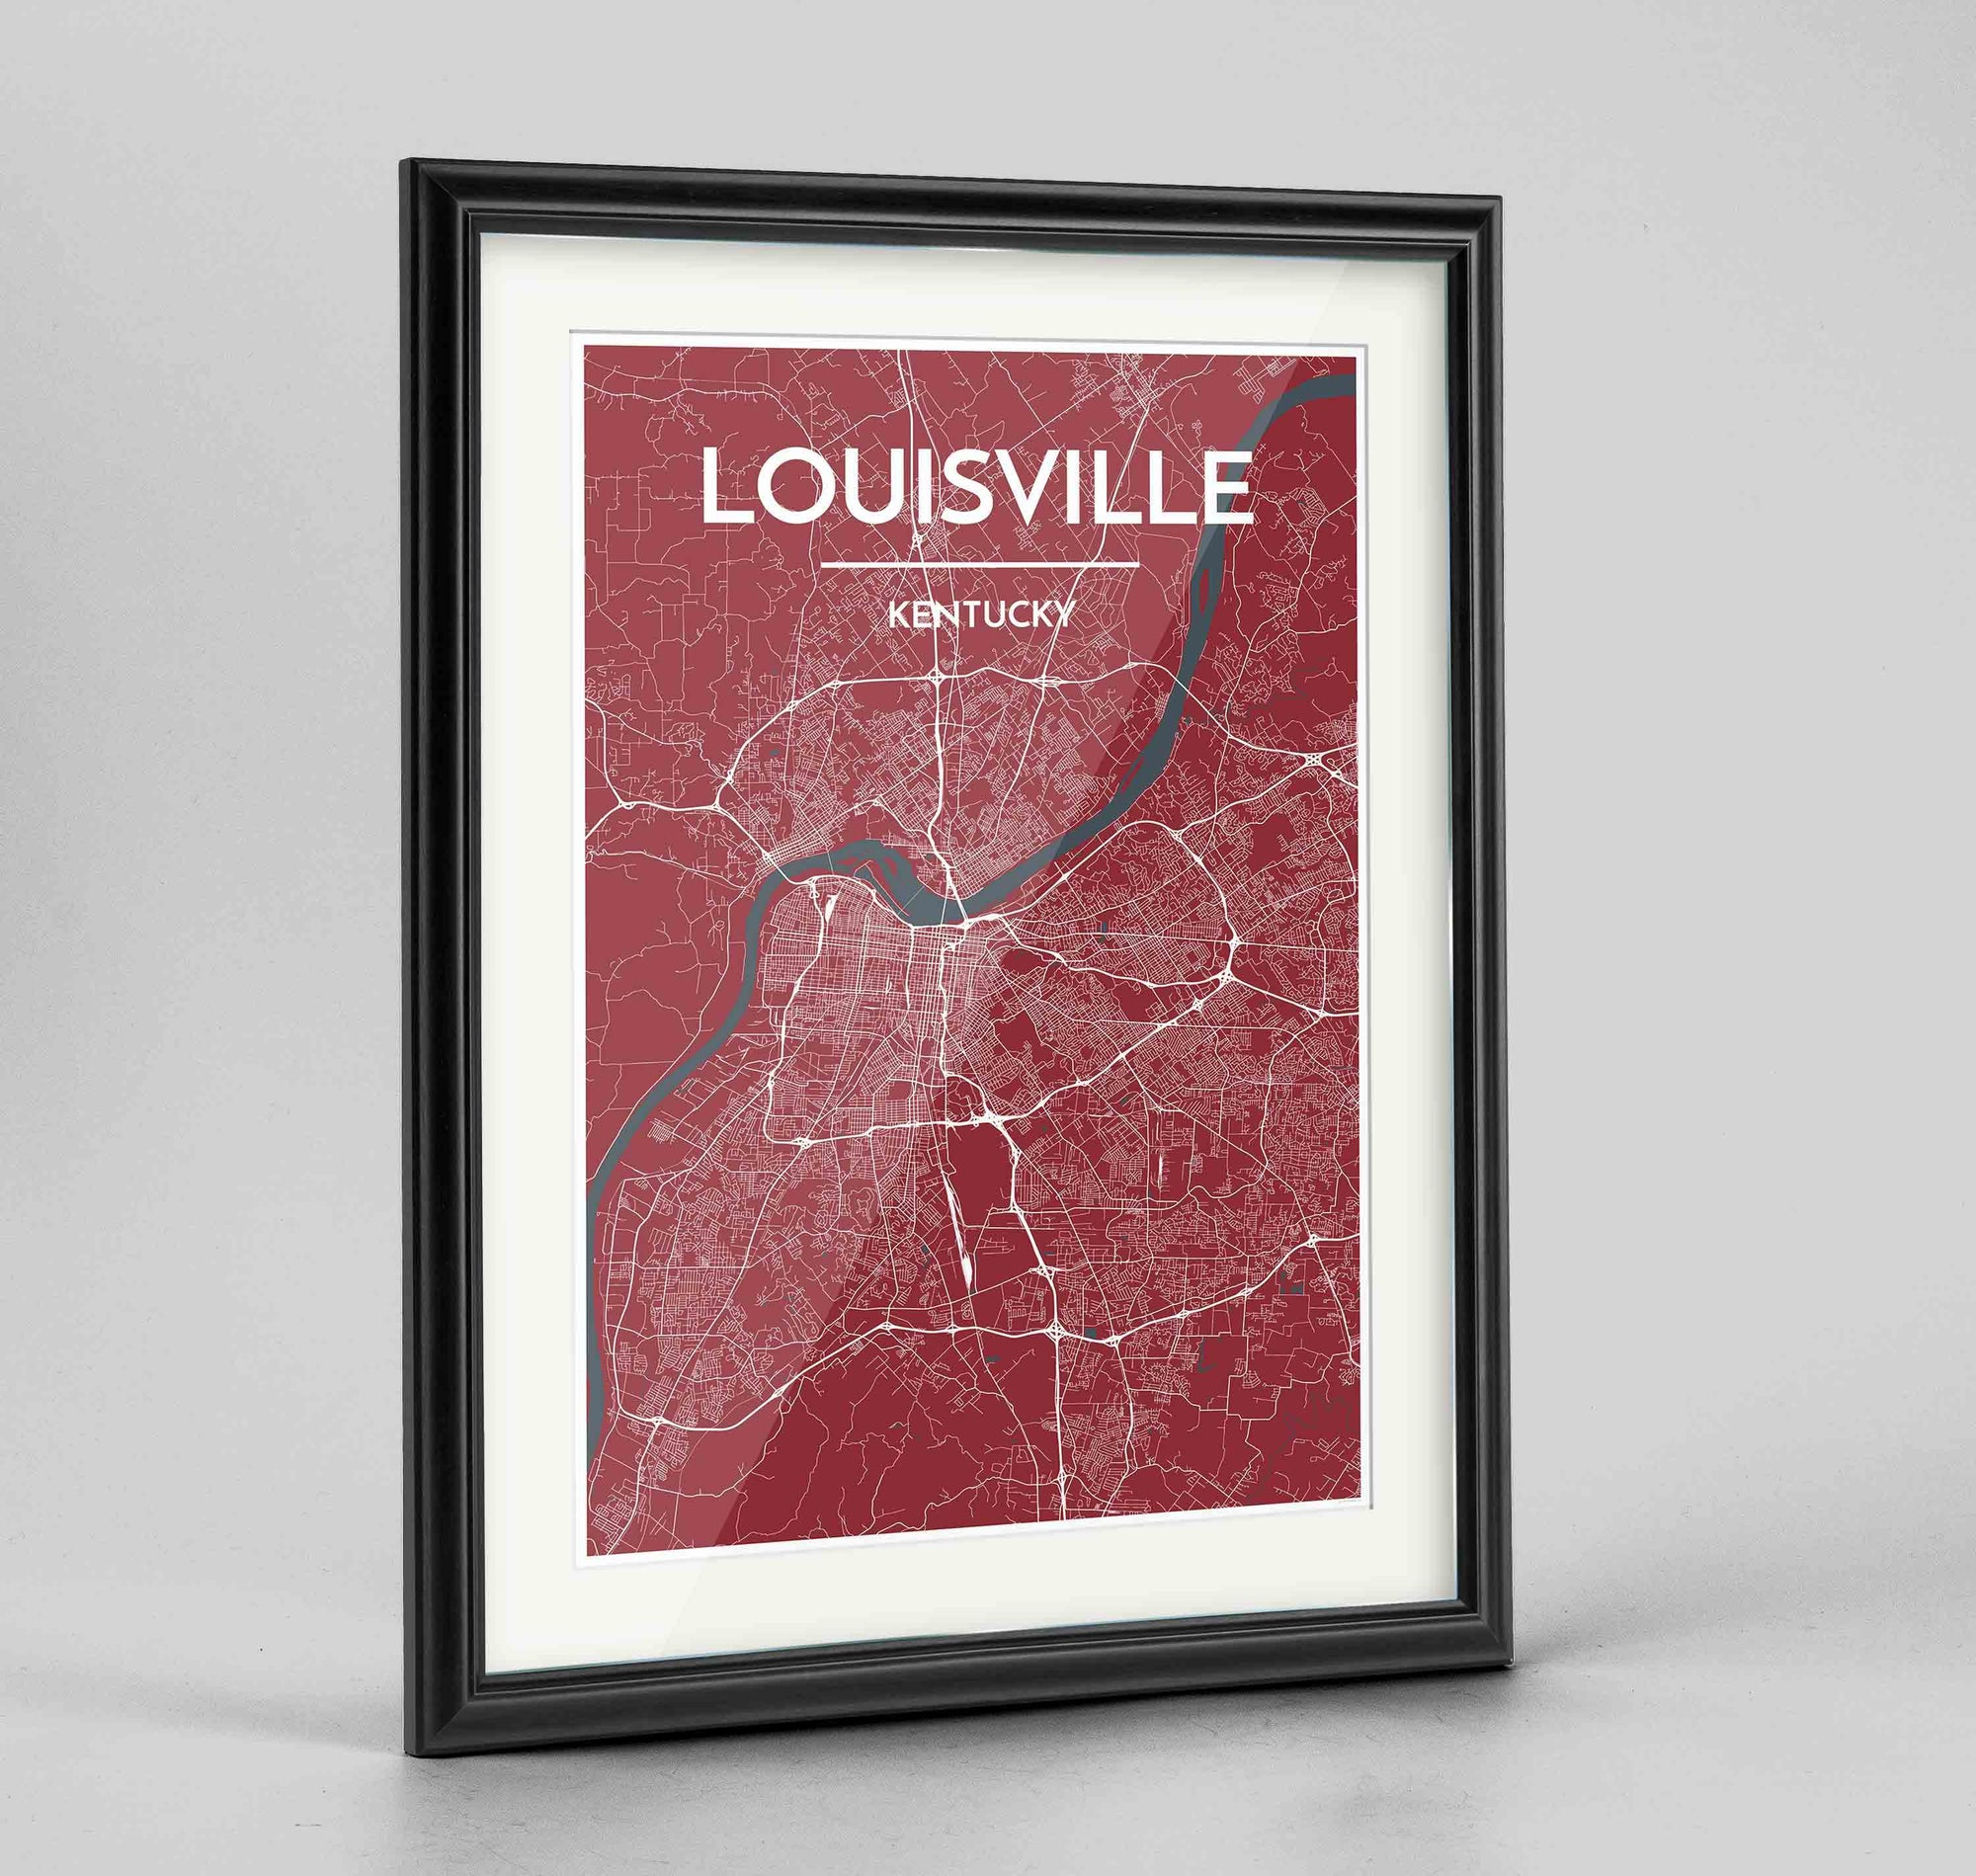 "Framed Louisville Map Art Print 24x36"" Traditional Black frame Point Two Design Group"